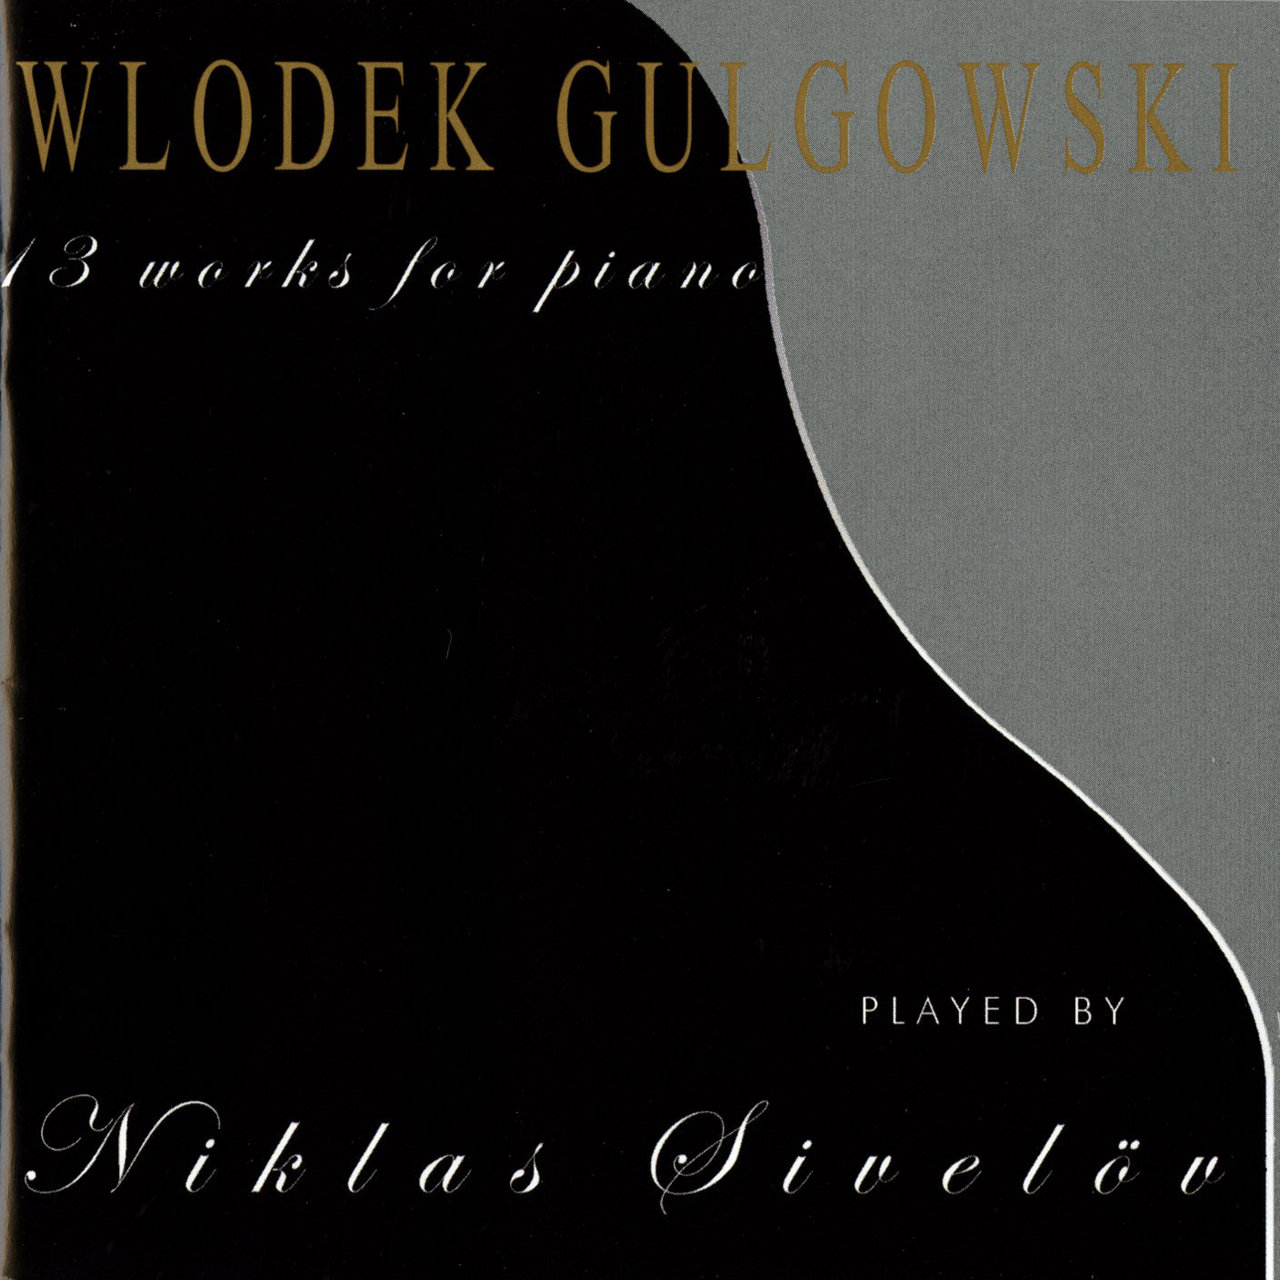 Gulgowski: 13 Works for Piano